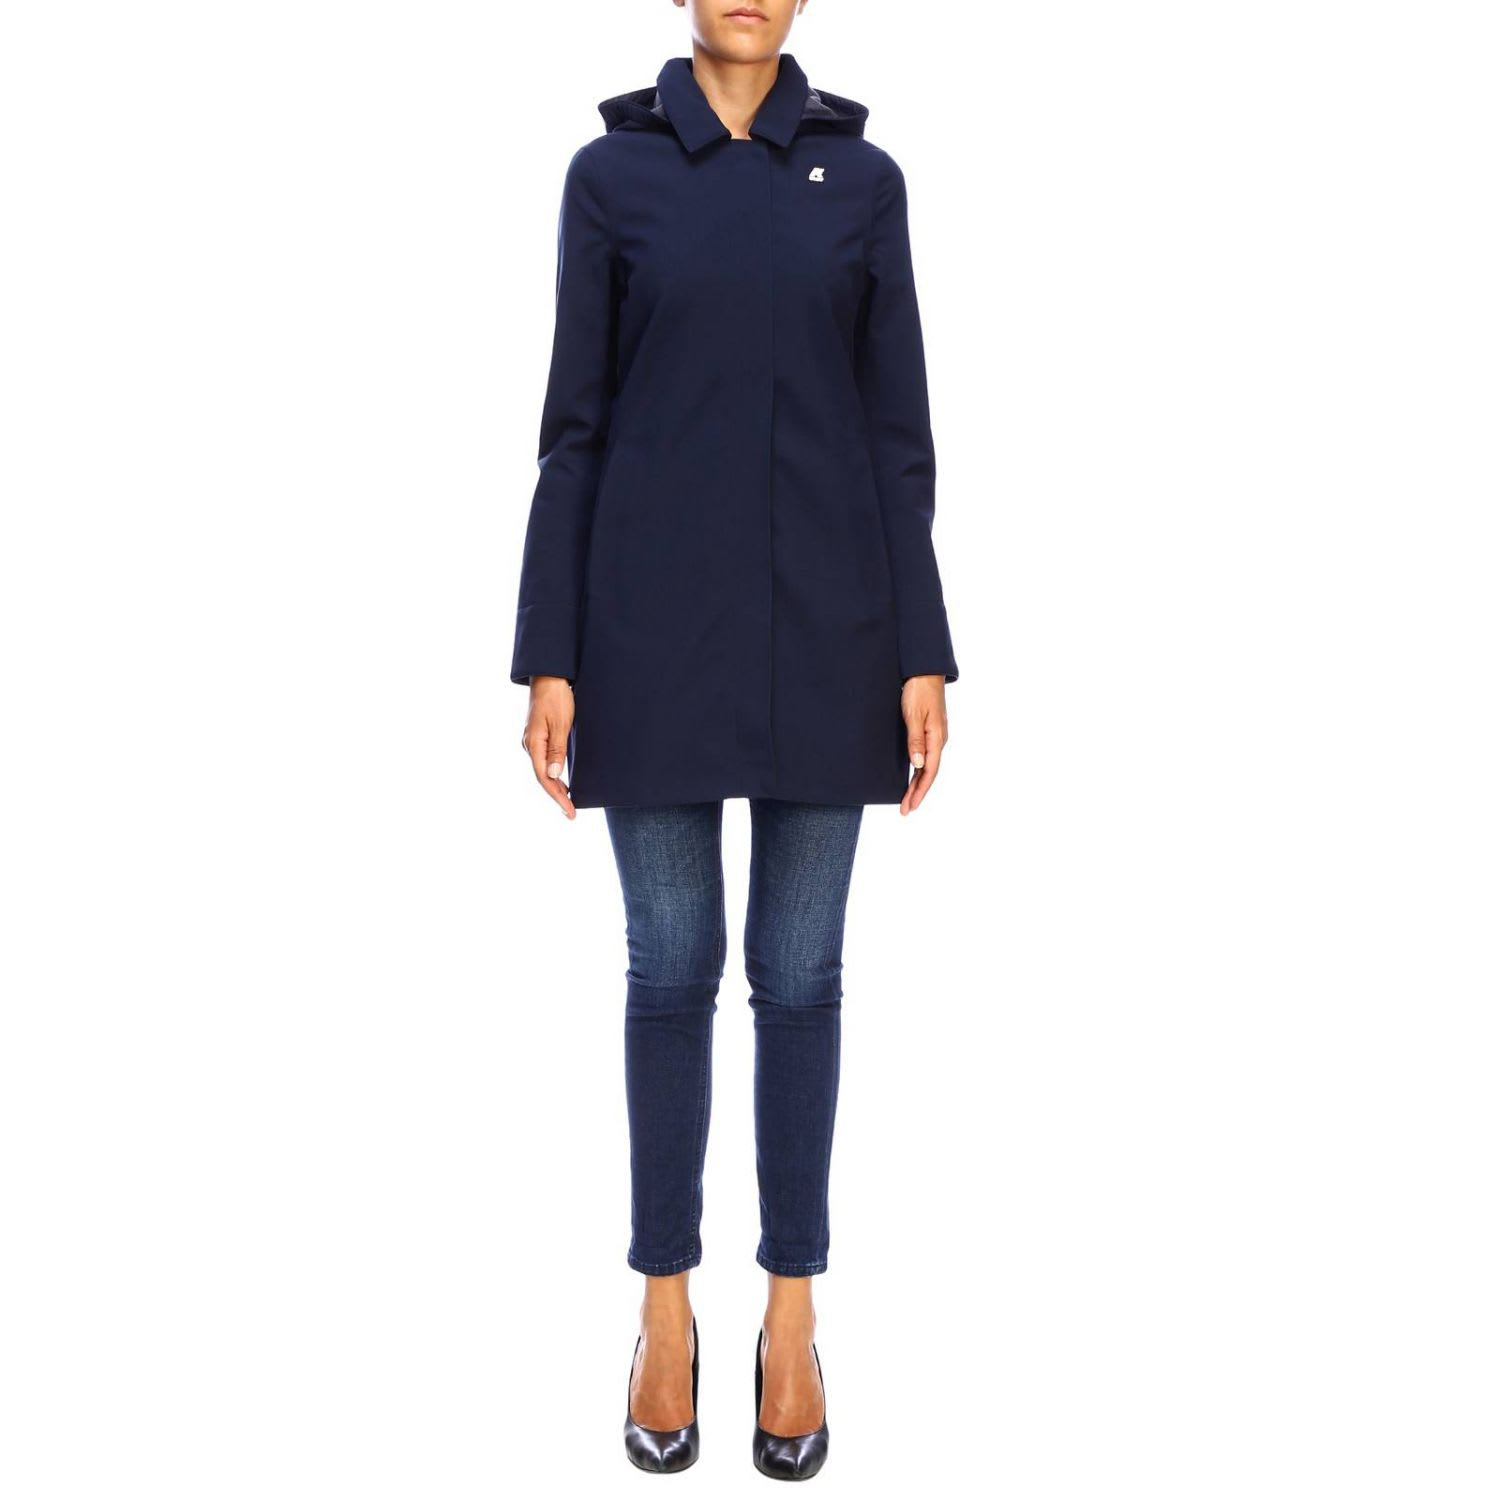 K-way Coat Coat Women K-way